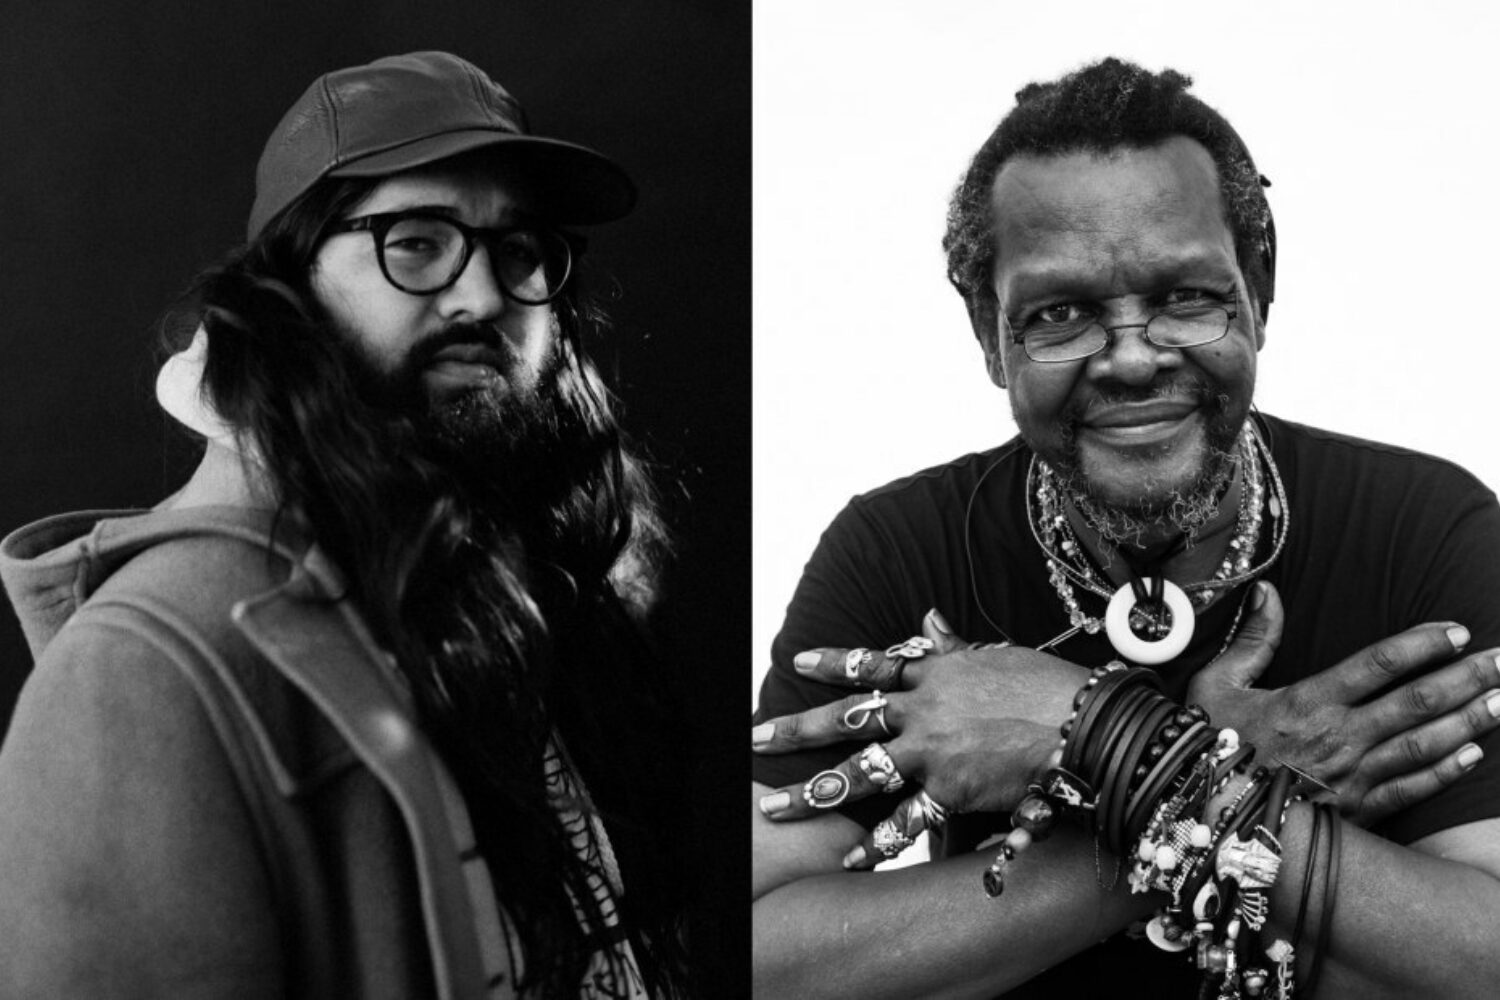 Matthew E. White and Lonnie Holley announce new album 'Broken Mirror: A Selfie Reflection'